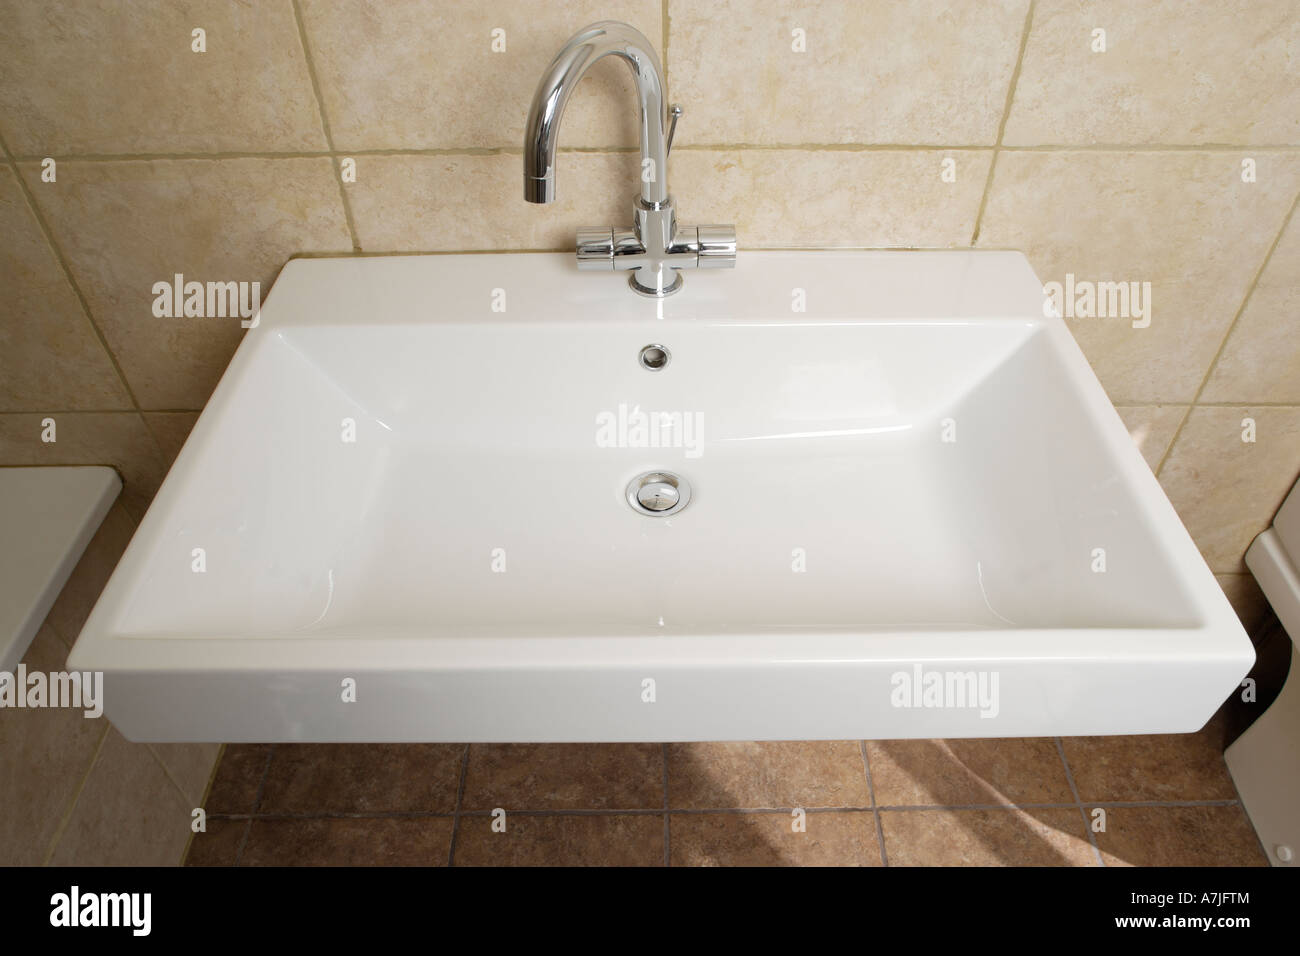 modern wash basin in bathroom Stock Photo, Royalty Free Image ...